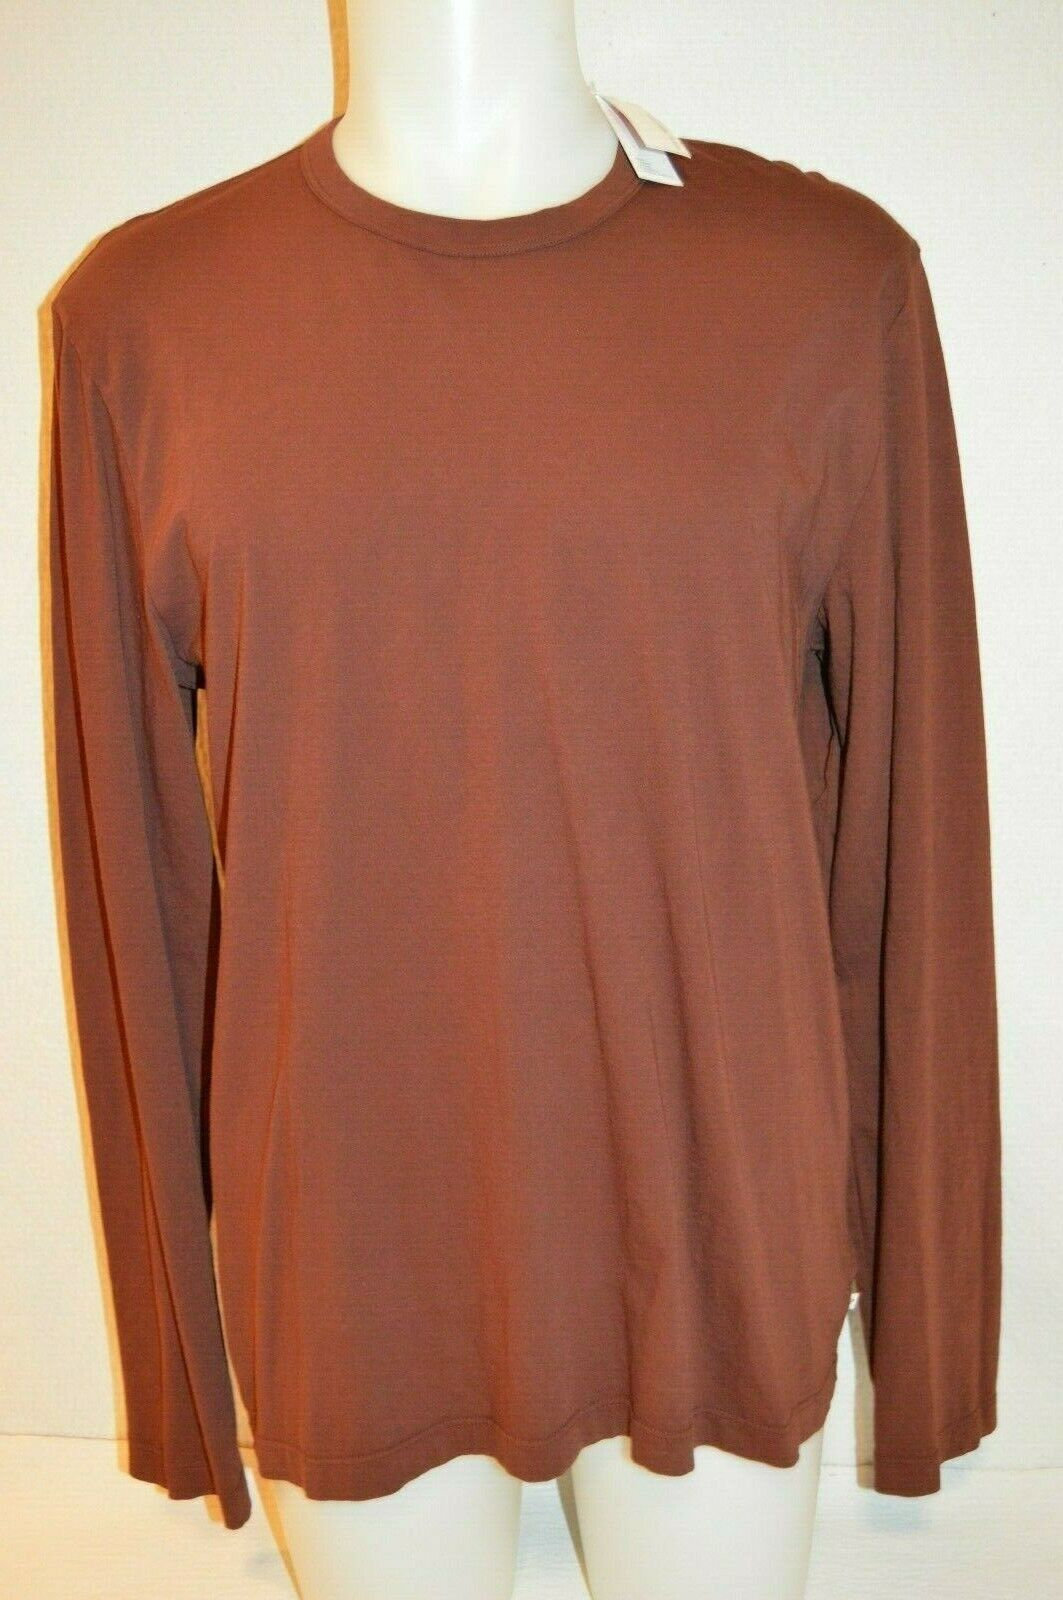 JAMES PERSE Man's Long Sleeved  T-shirt NEW Size 1  Small Made in  USA